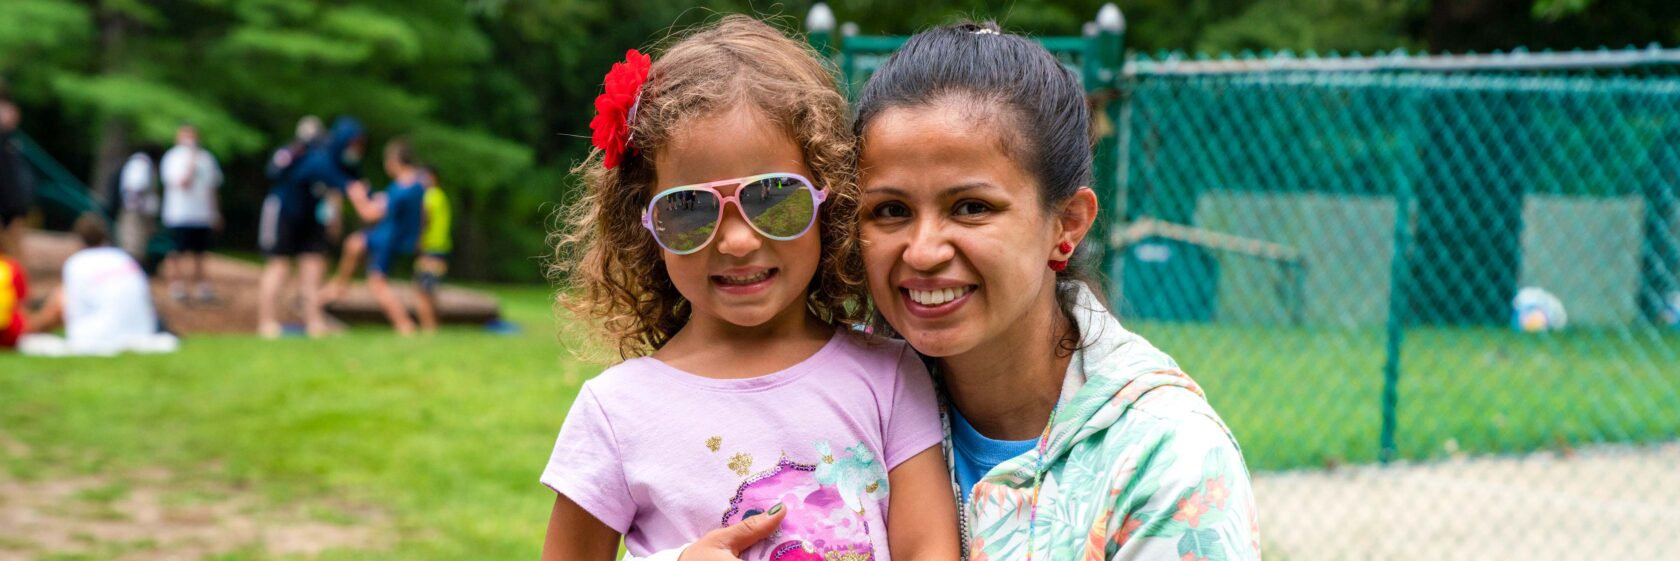 A mother and daughter smiling at camp.